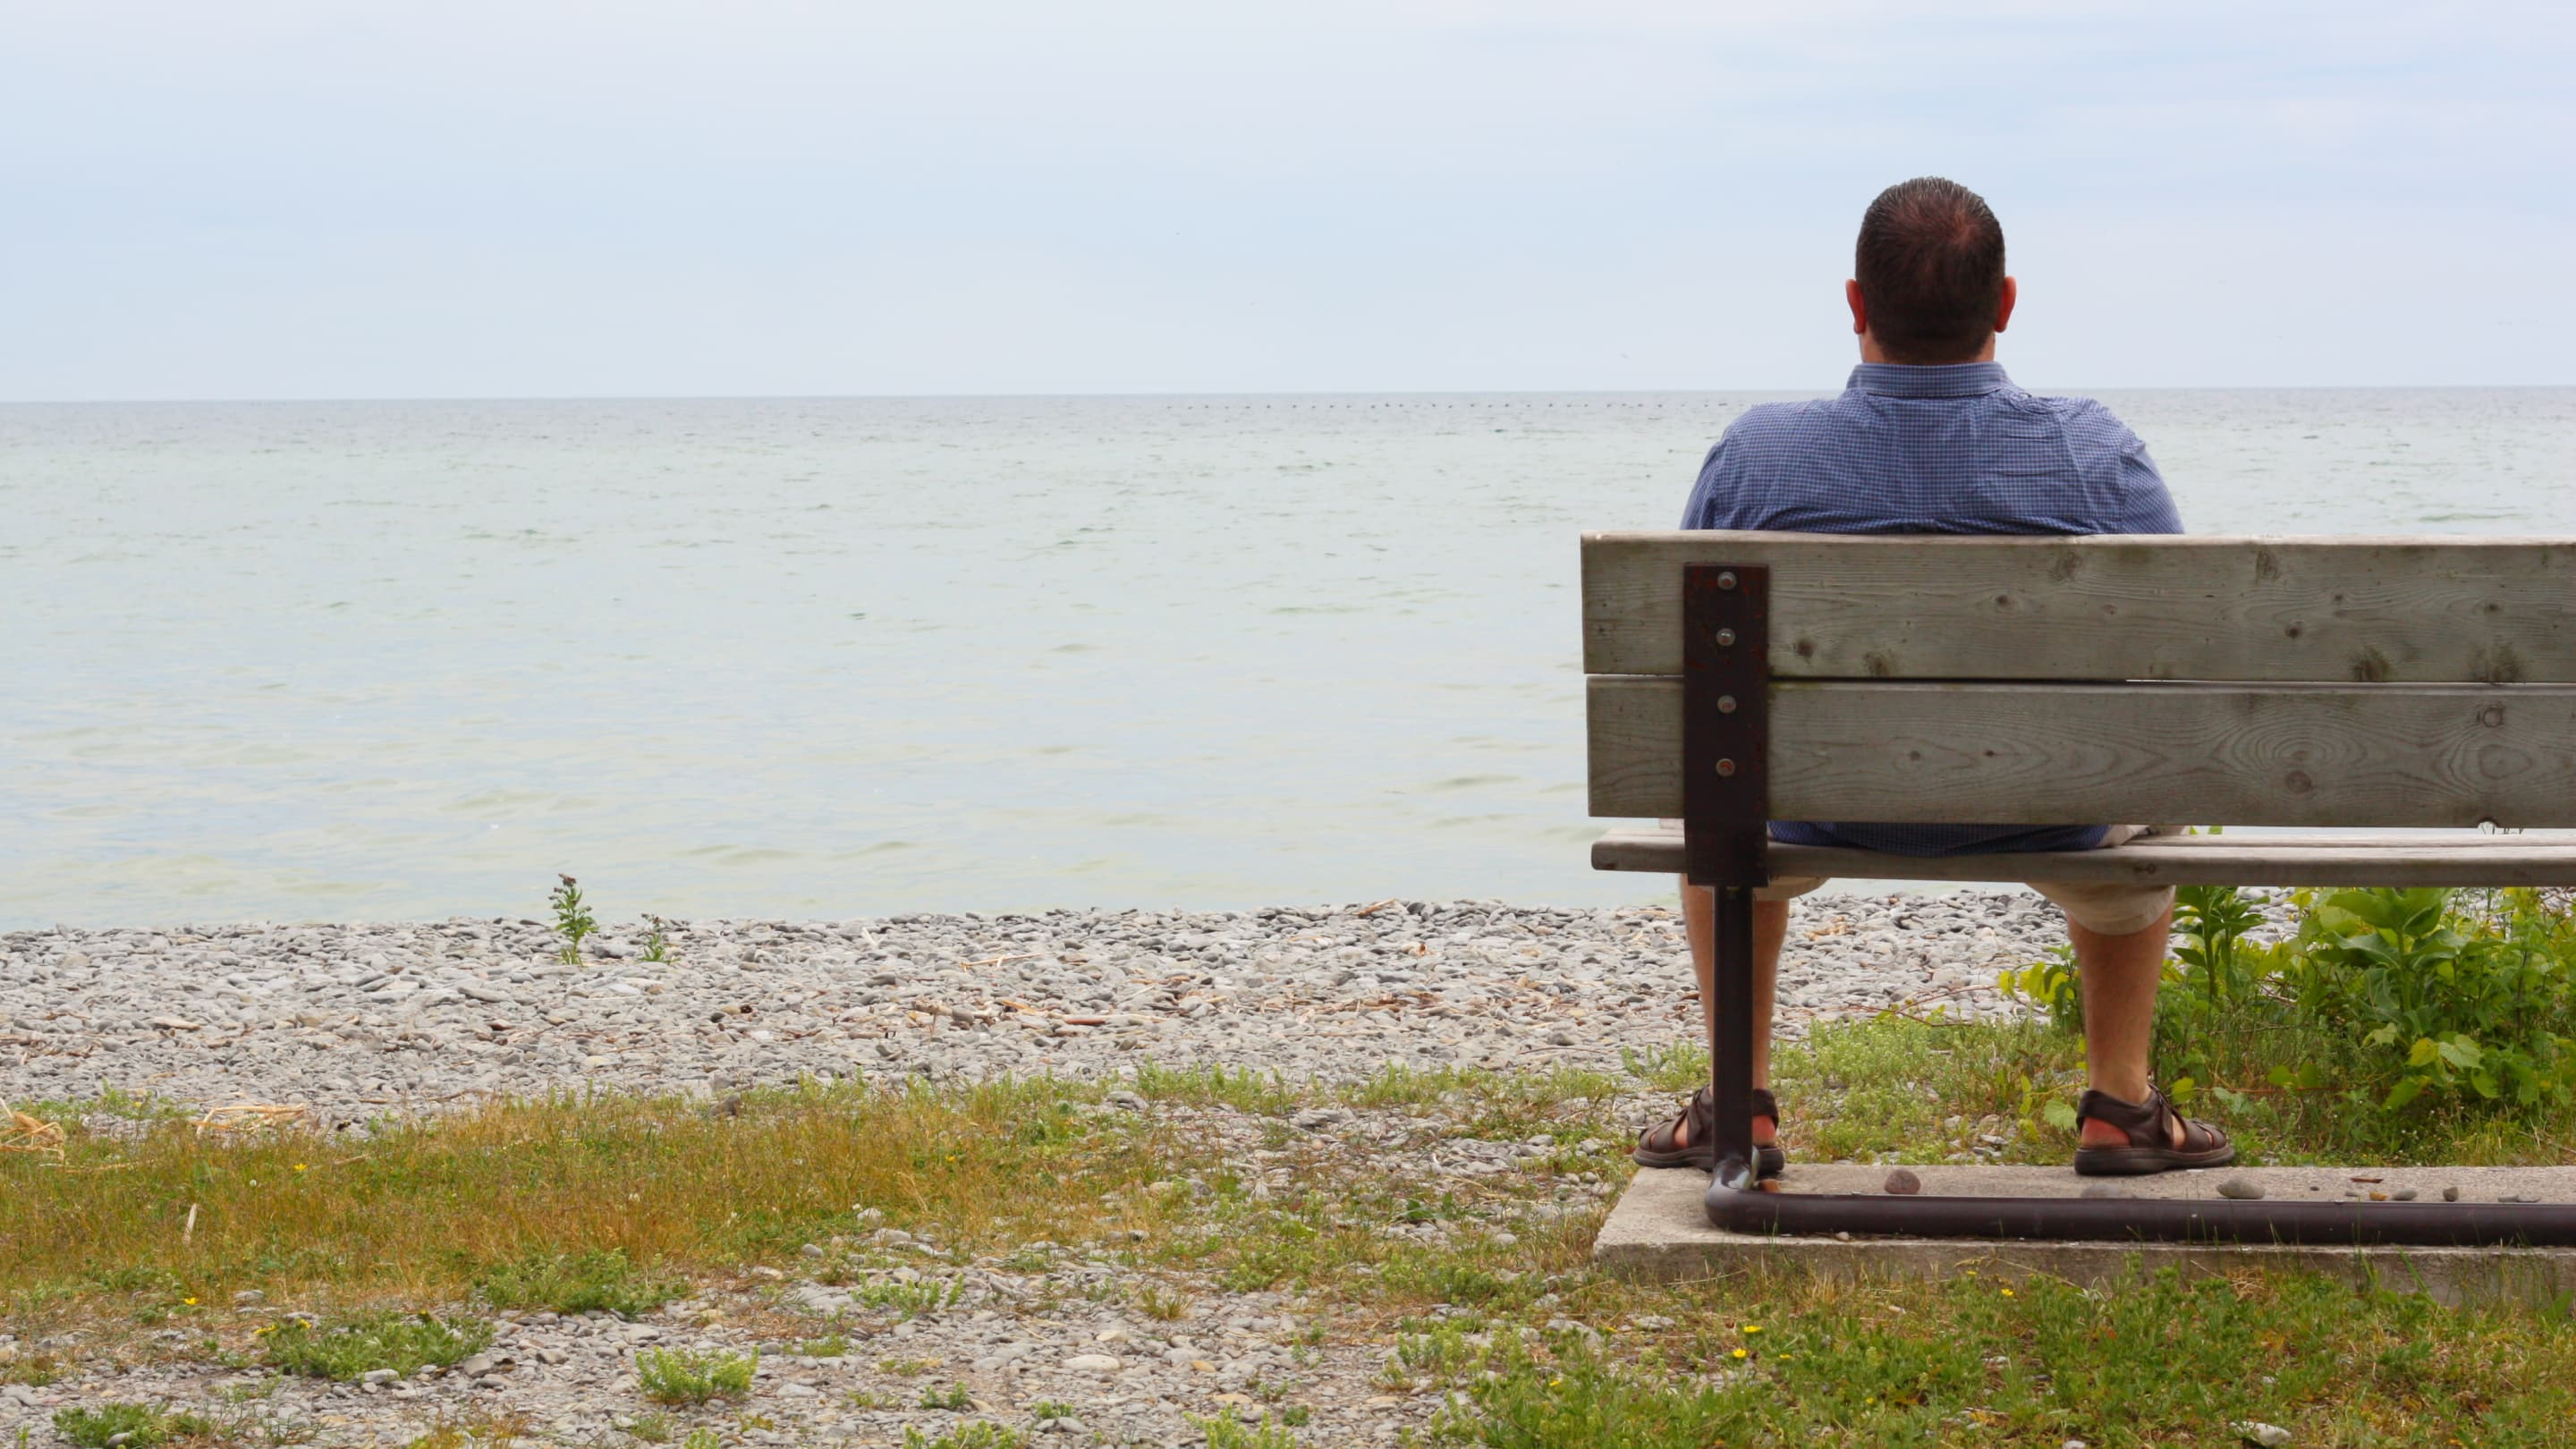 A man coping with heart failure sits on a bench at the beach looking out at the water.